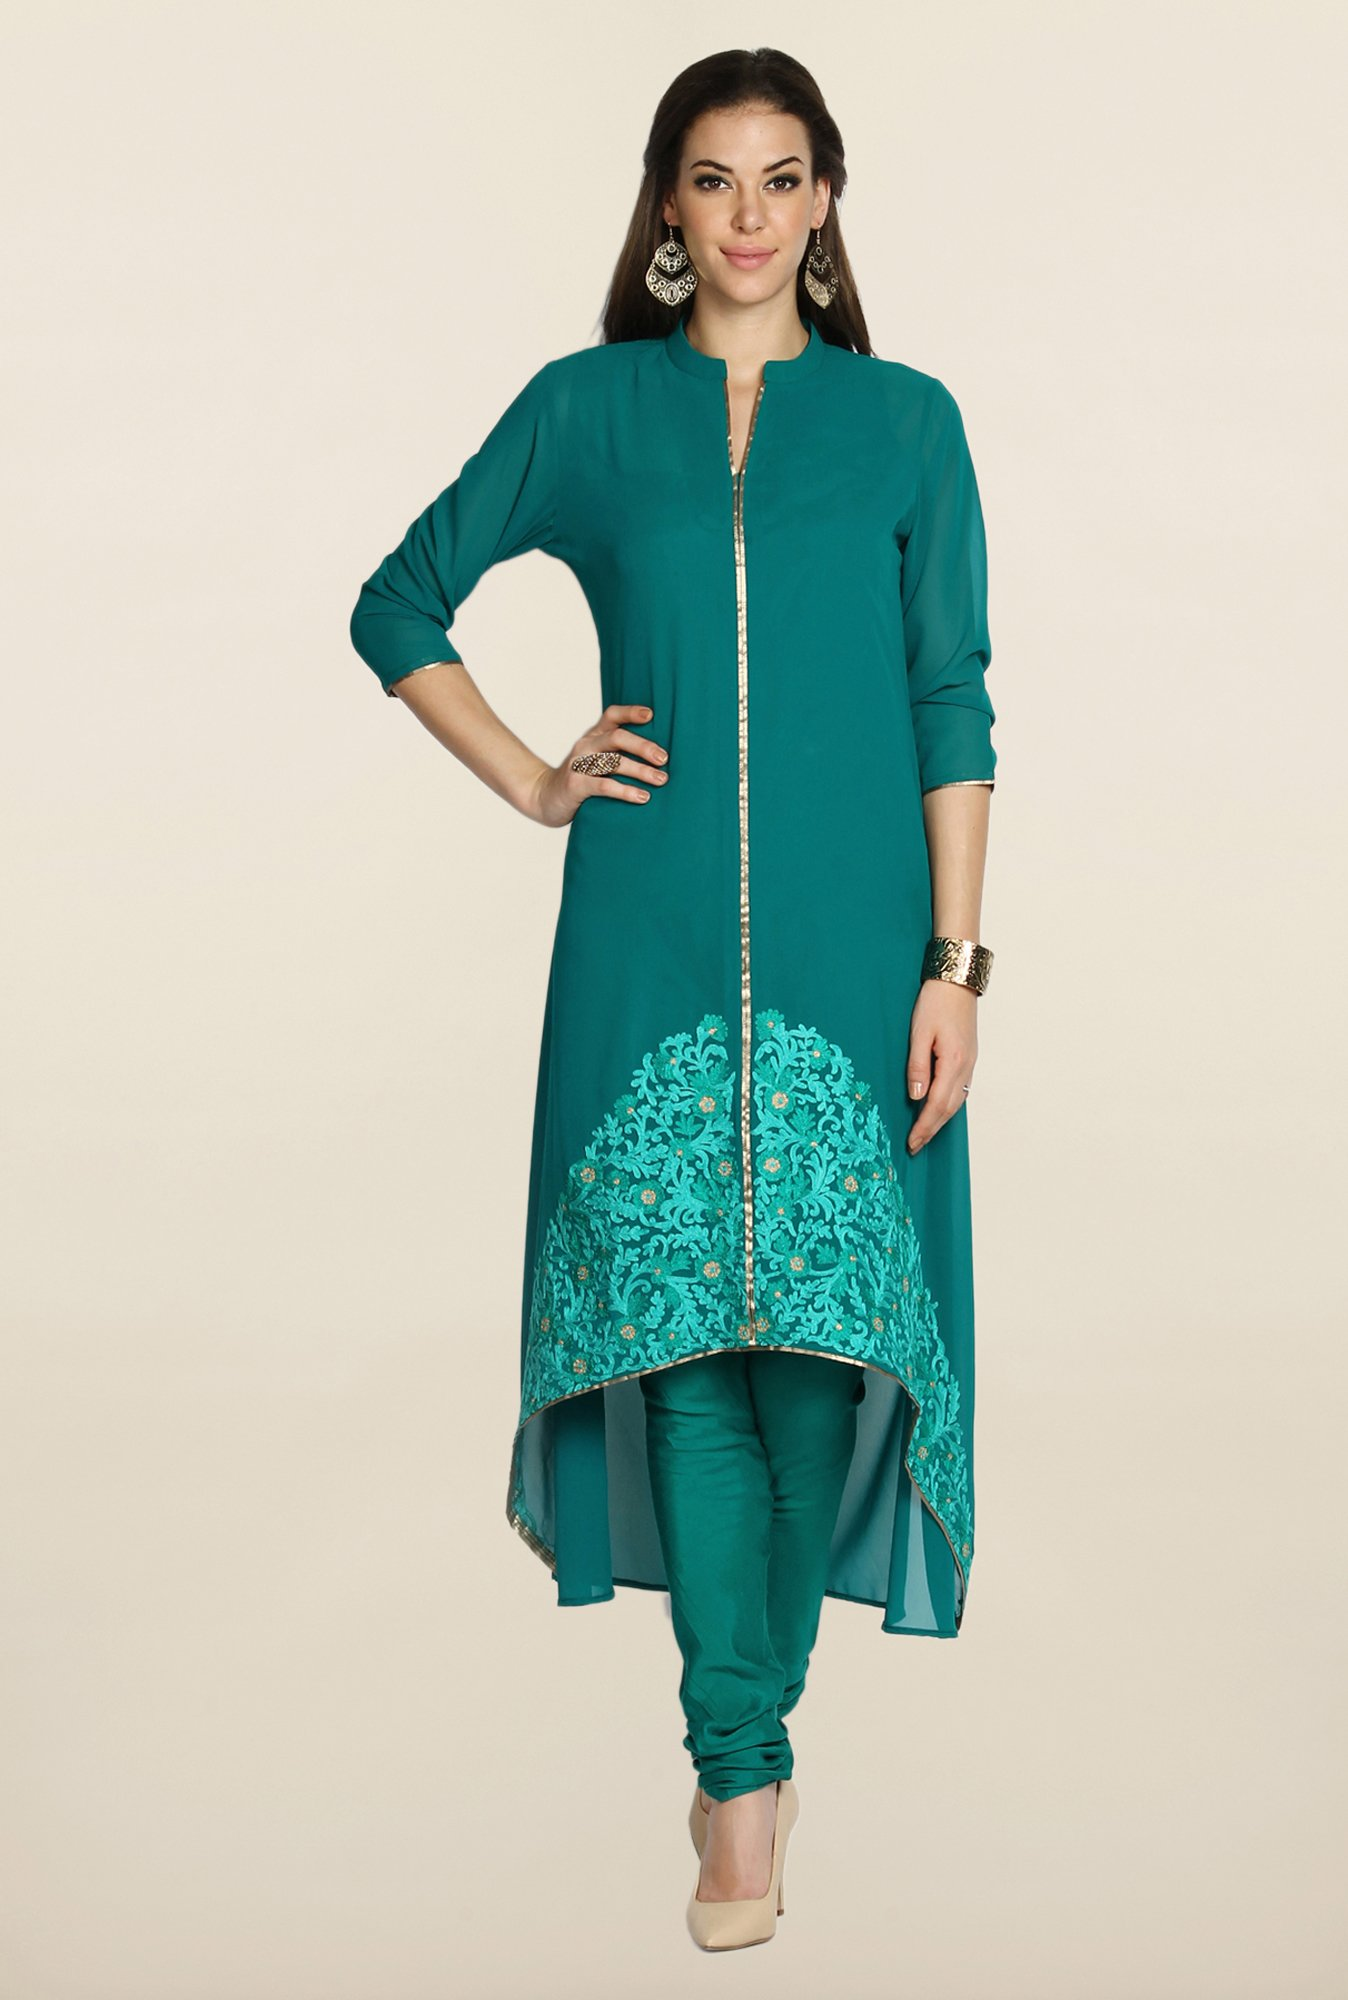 Soch Green Georgette Zari Suit Set